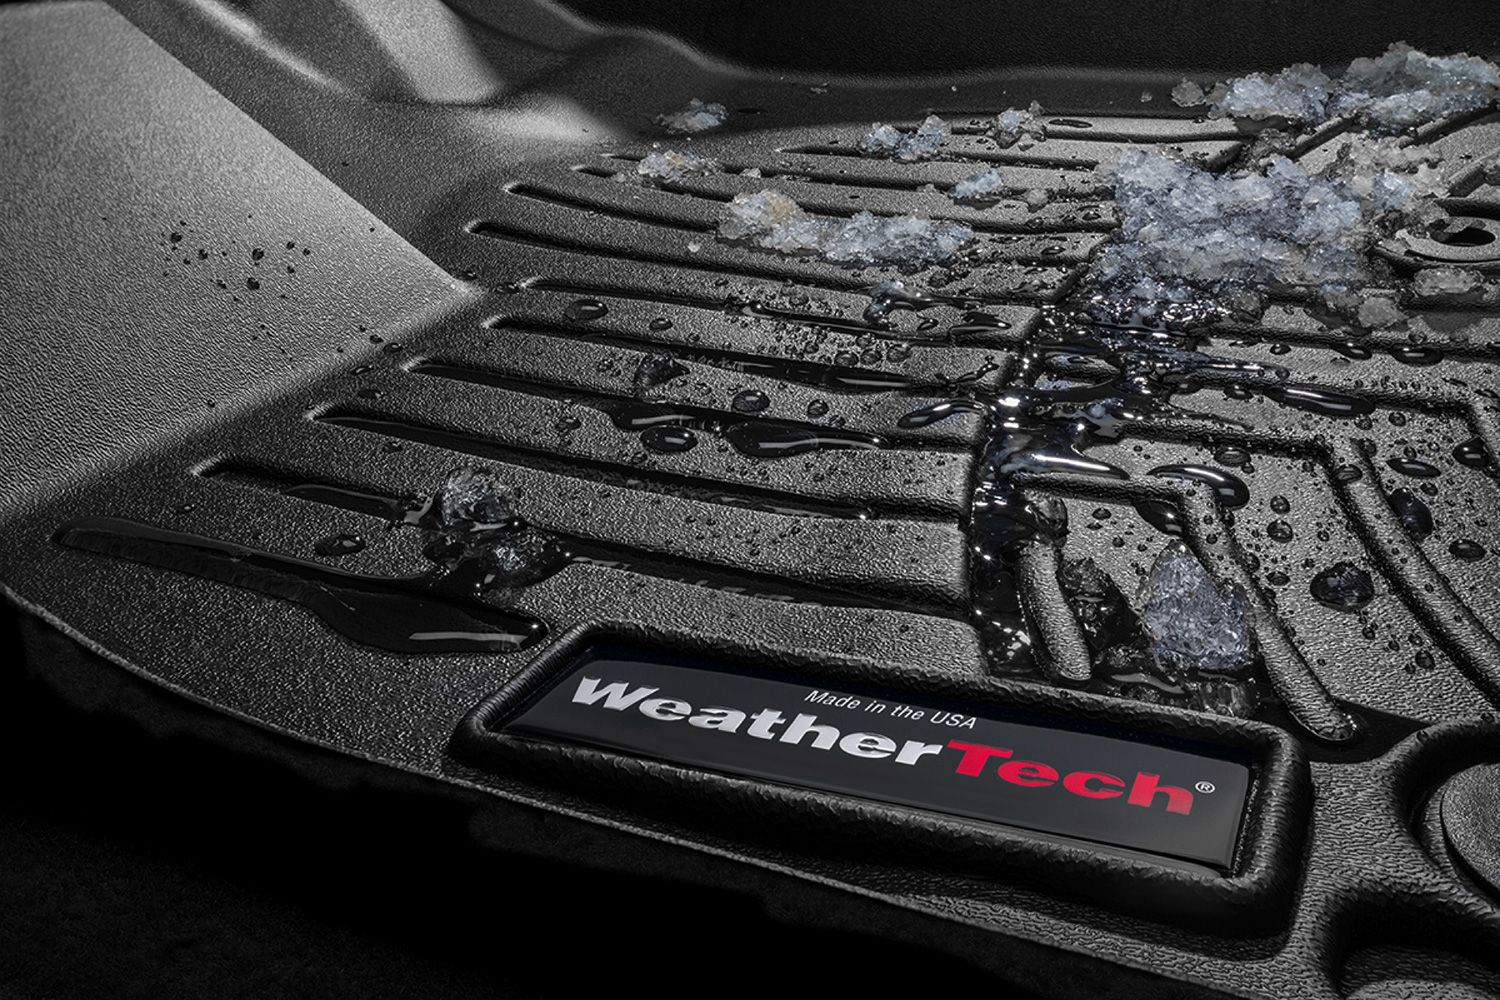 Weathertech mats london ontario - Get 10 Off On Your Purchase Of Weathertech Floor Mats At Claremont Toyota